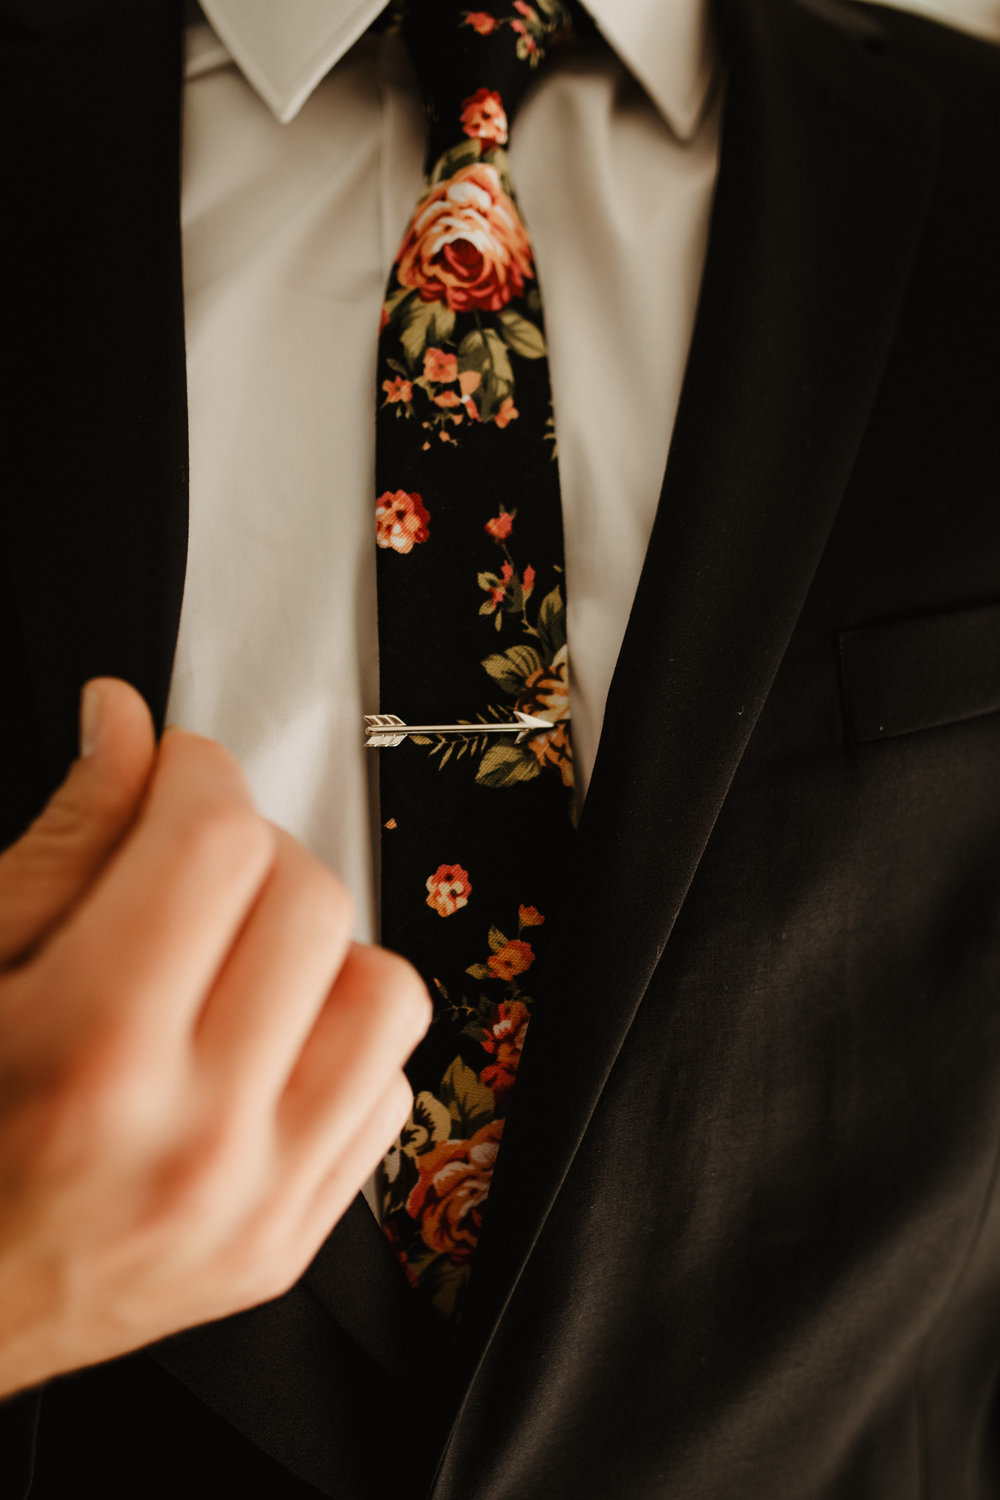 Groom-Wedding-Suit-Tie-01